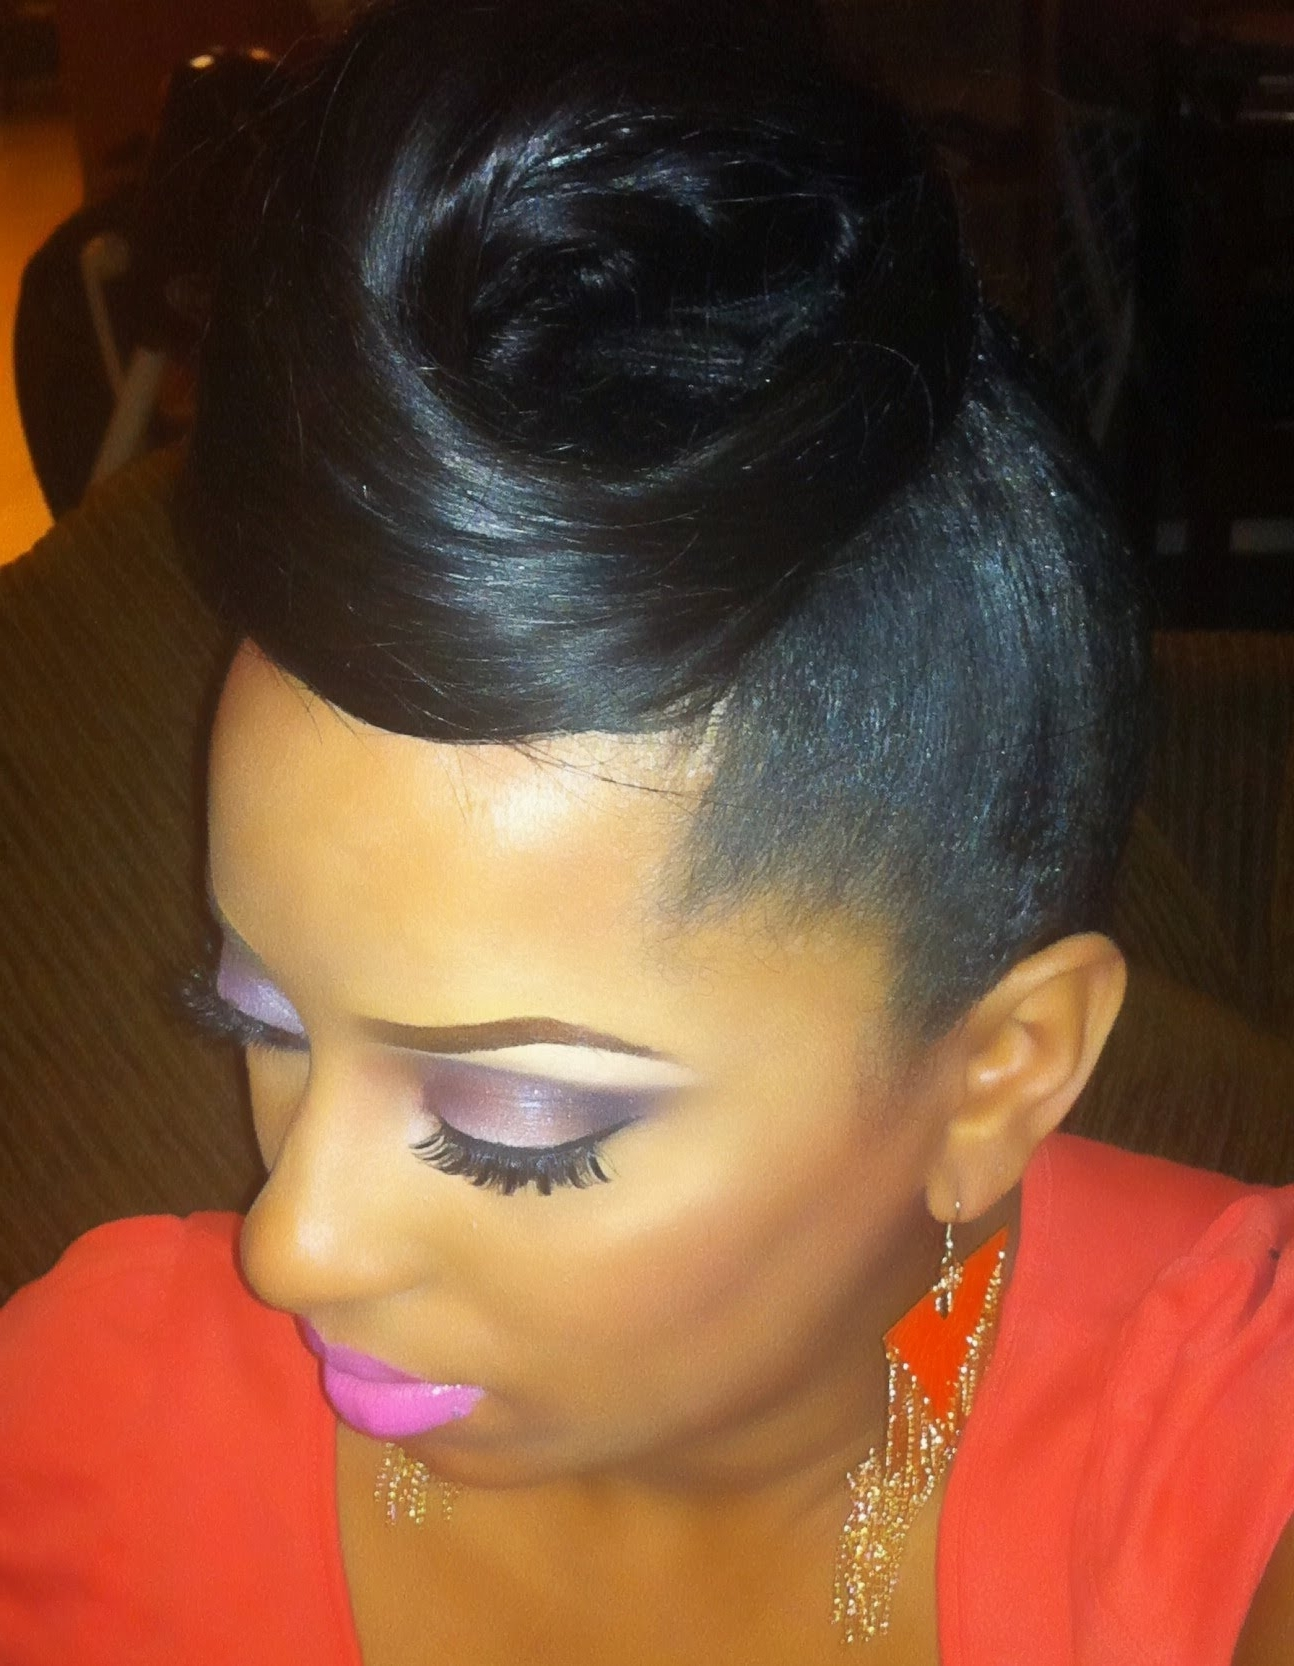 Updo Weave Hairstyles Black Hair Cute With For Women Easy Without With Updo Hairstyles With Bangs For Black Hair (View 4 of 15)